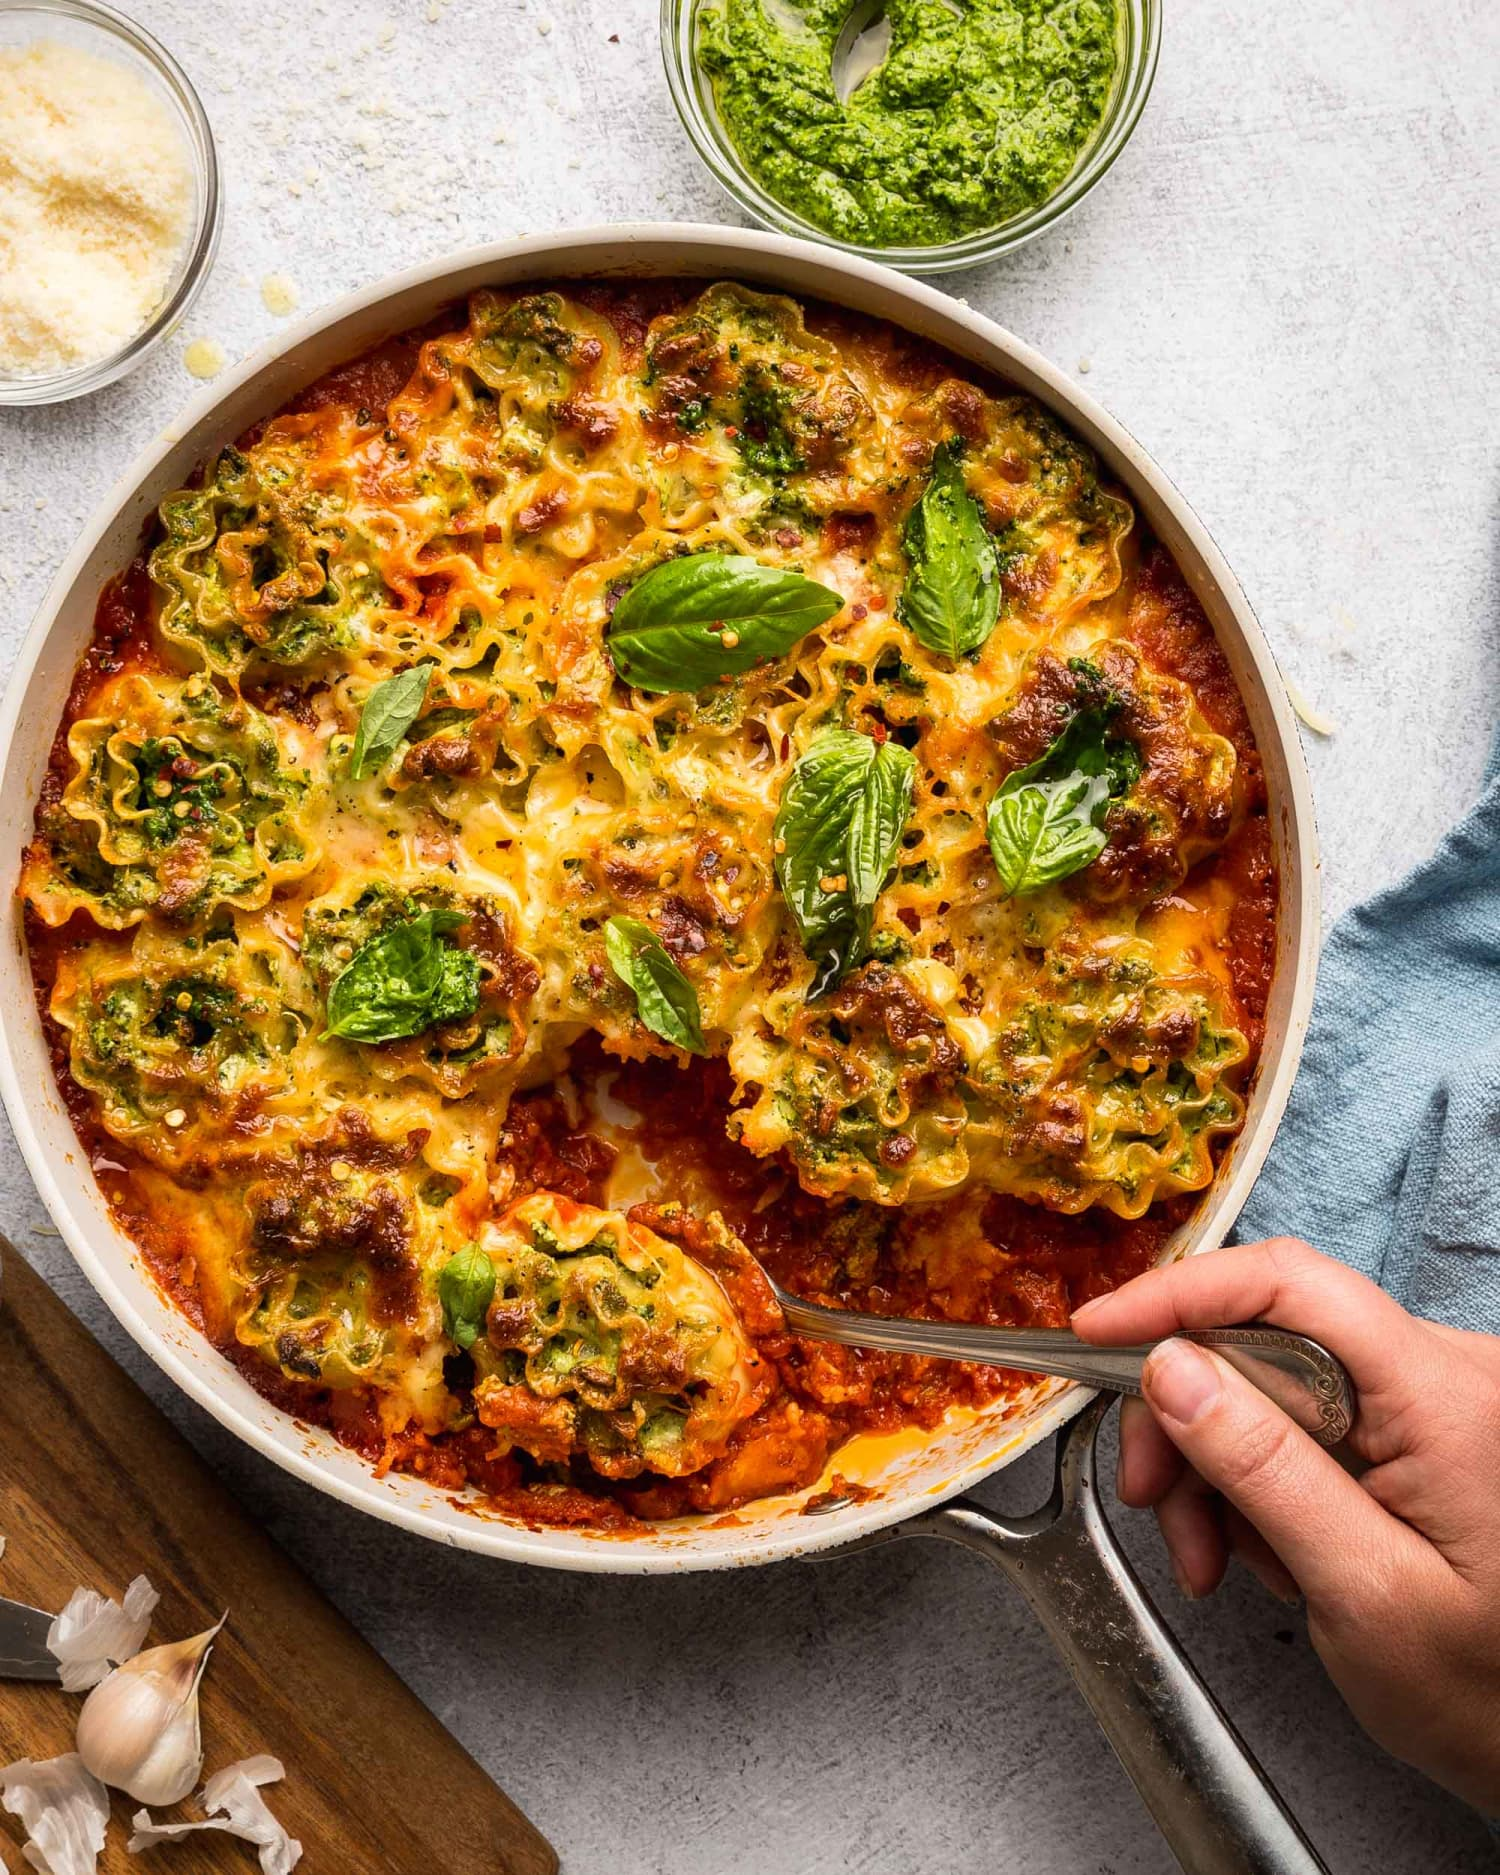 These Skillet Lasagna Roll-Ups Are Crispy, Cheesy, and Packed with Greens